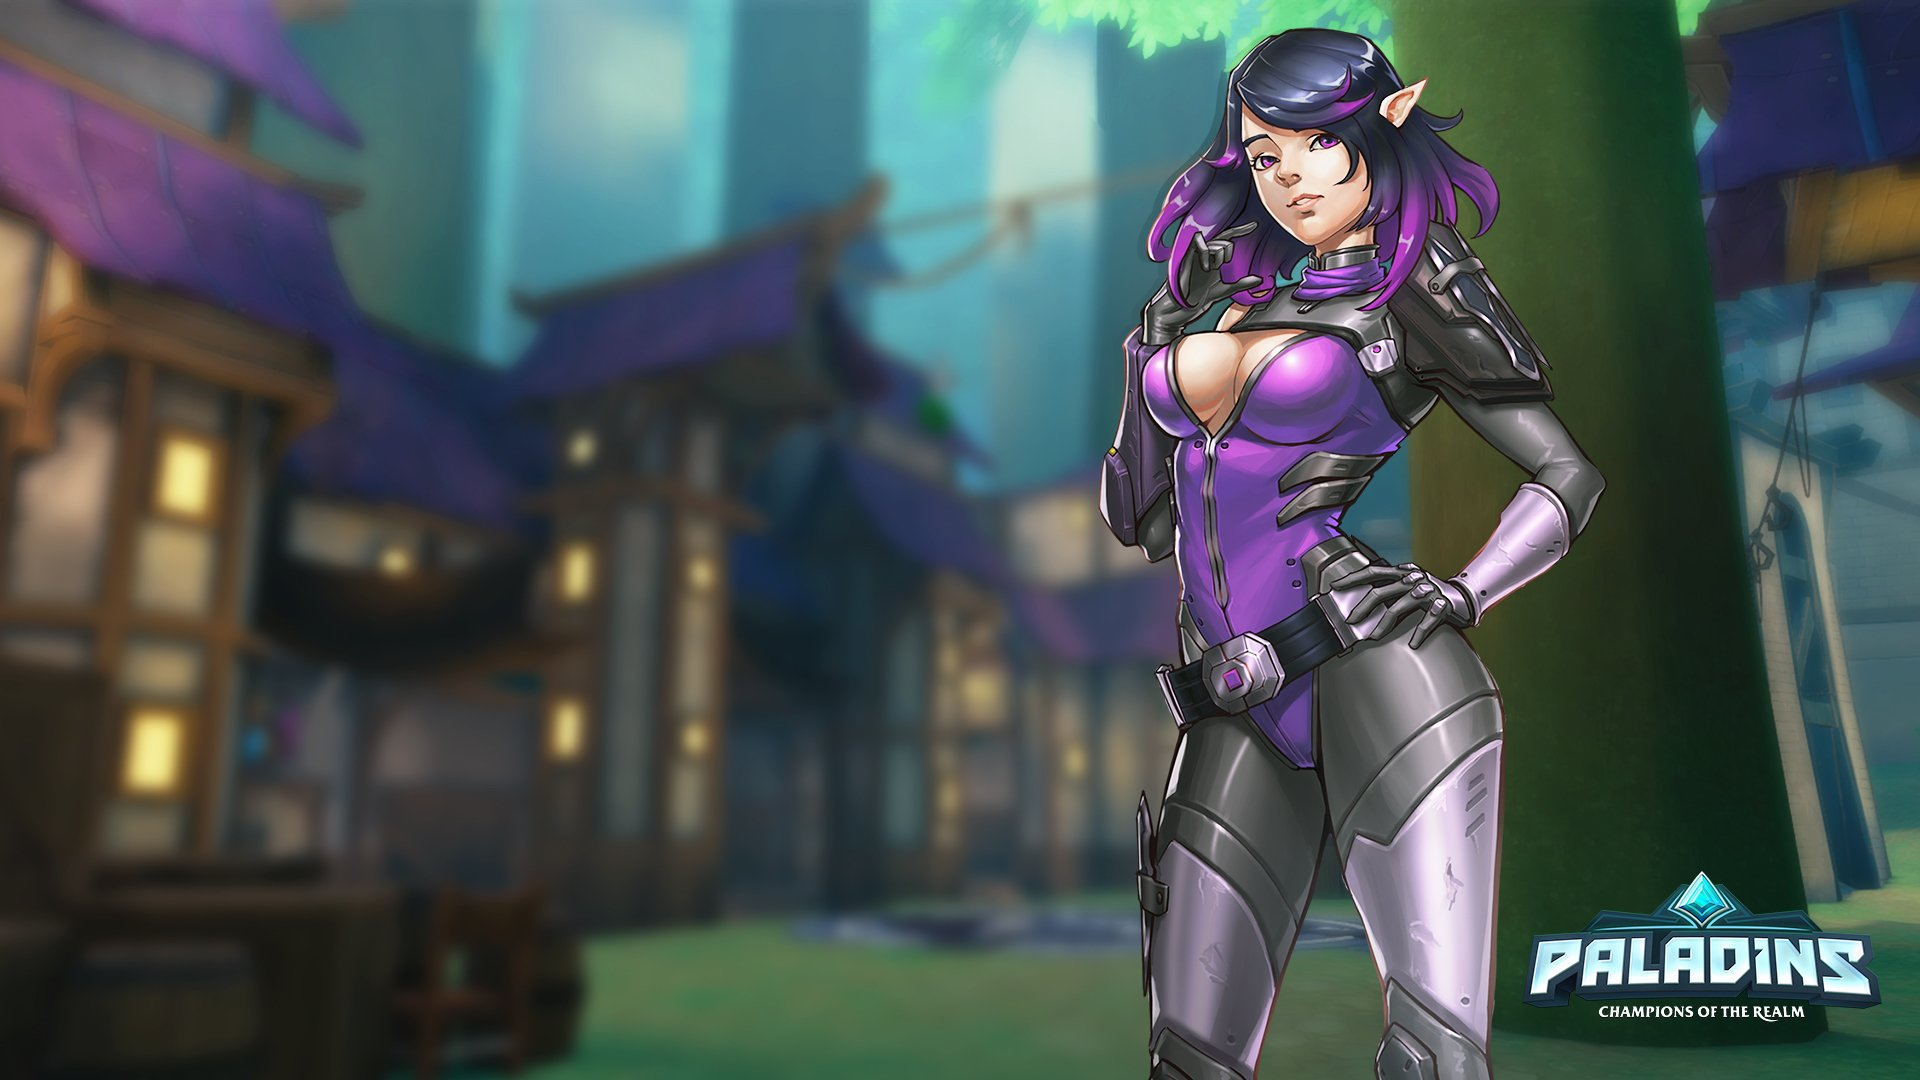 14 Skye Paladins Hd Wallpapers Background Images Wallpaper Abyss